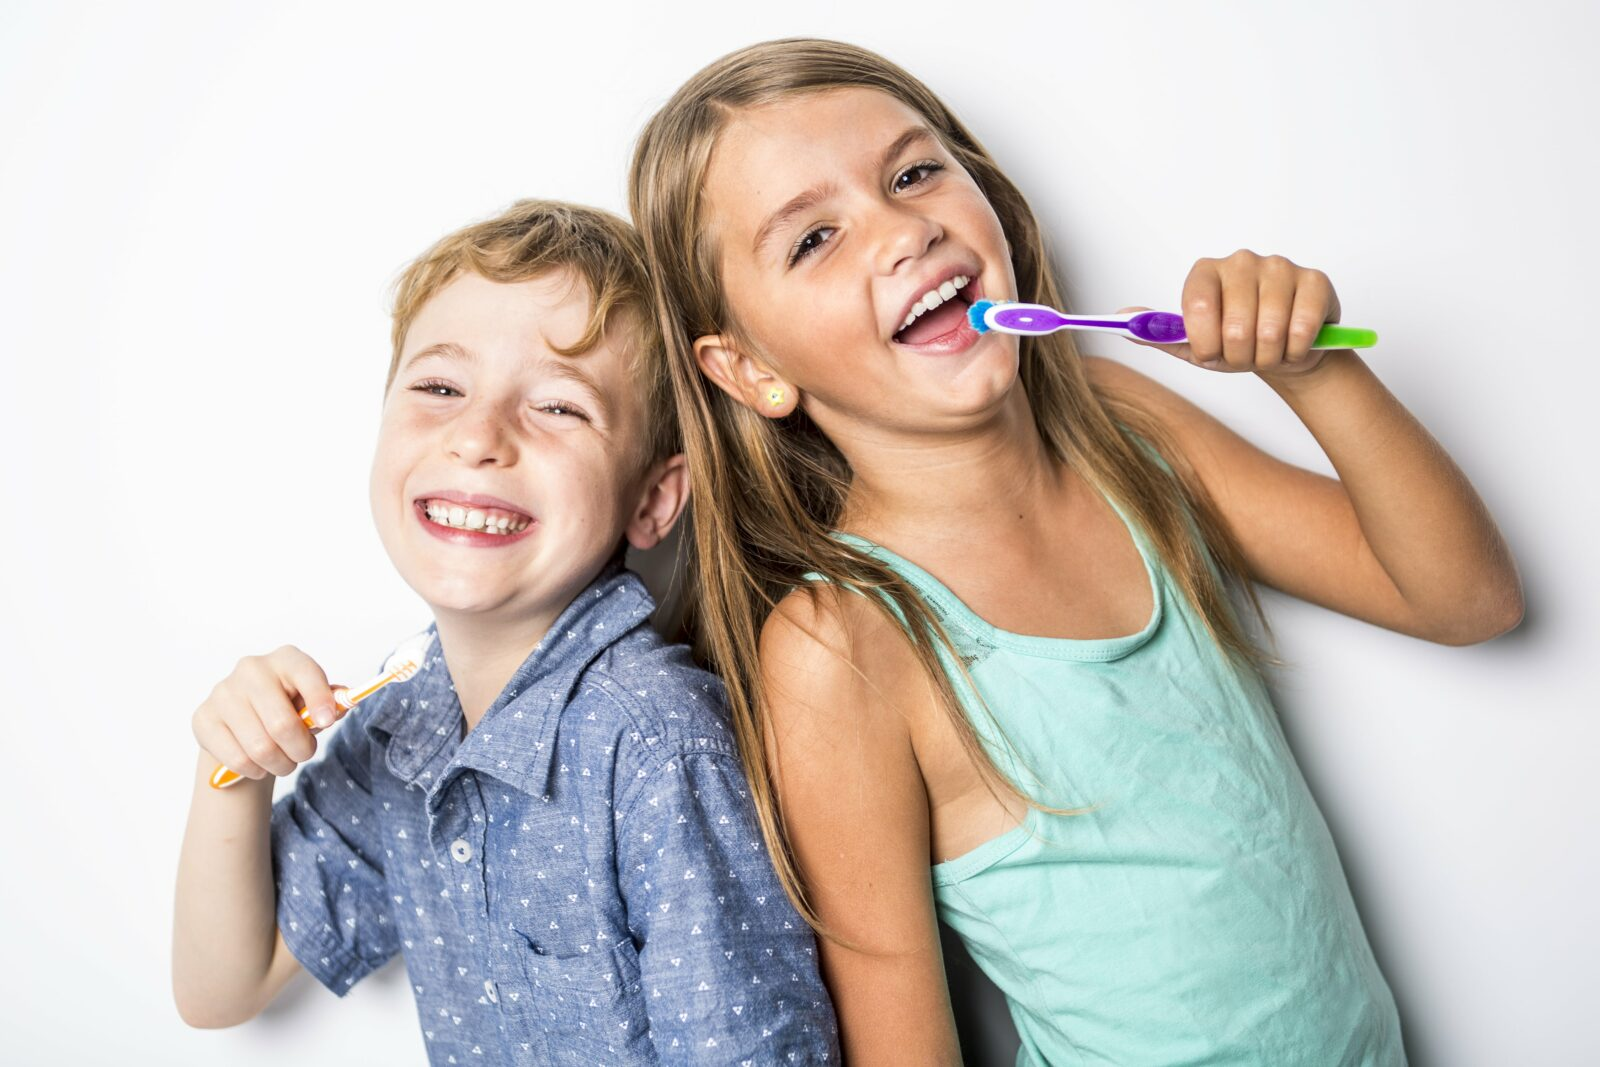 brother and sister brushing their teeth back to back